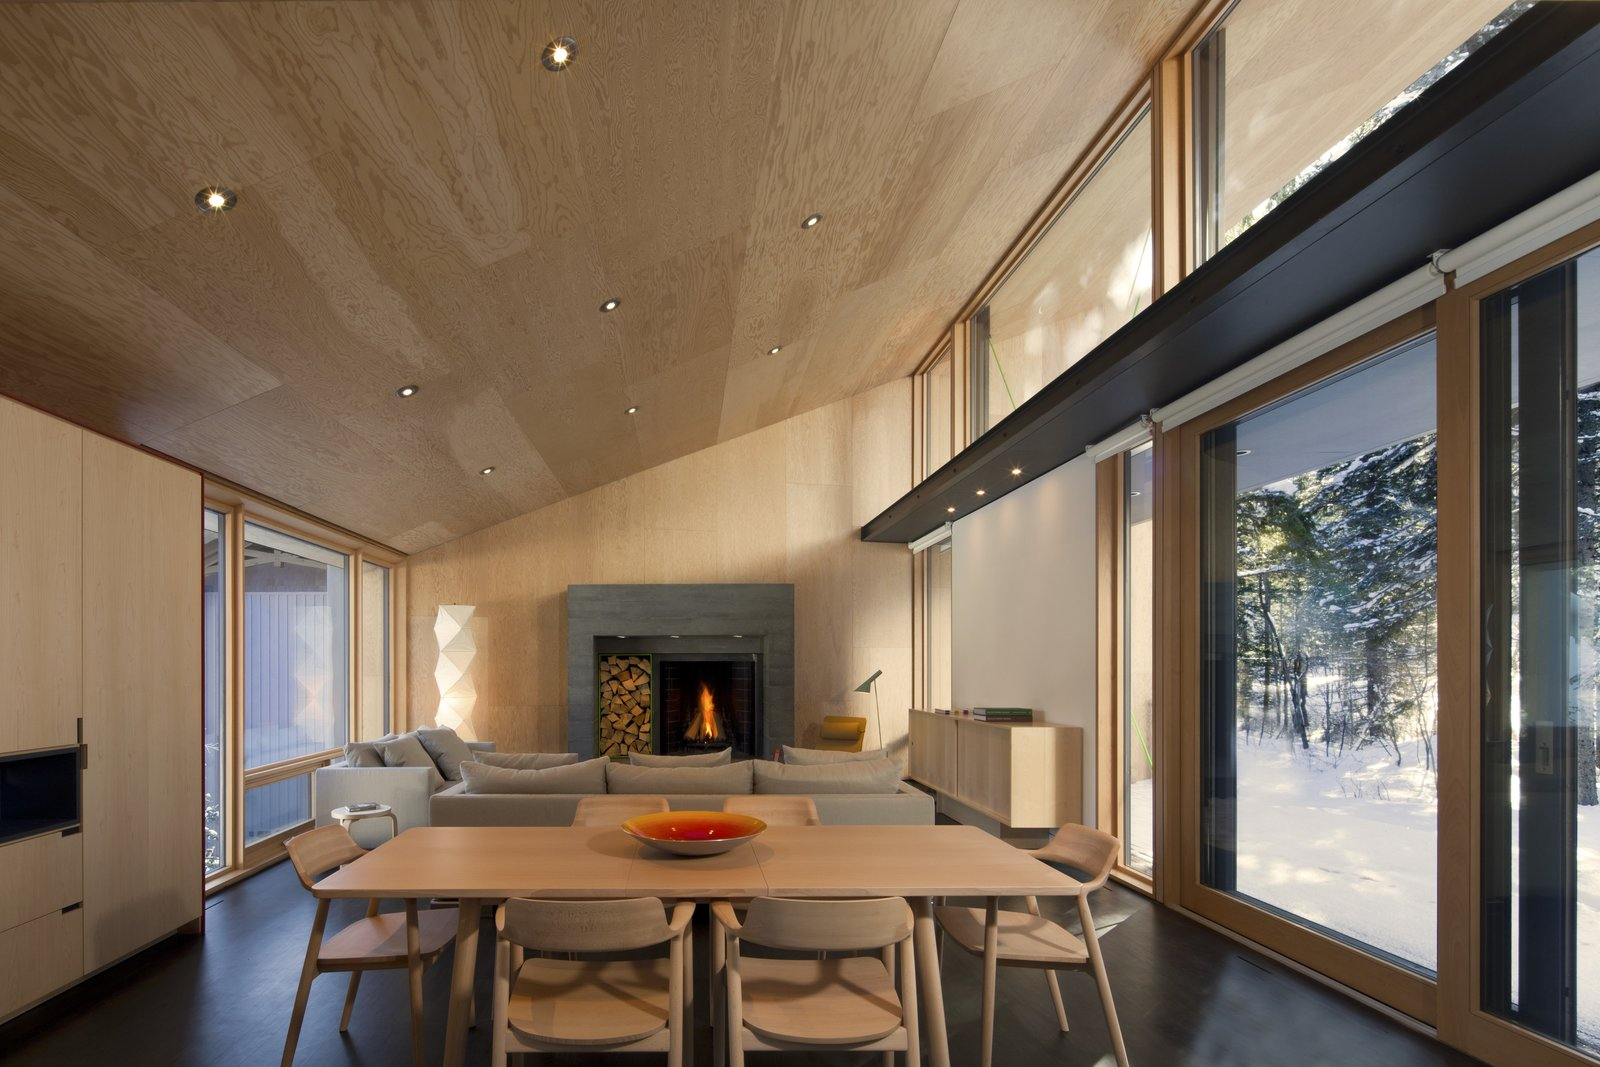 Tagged: Wood Burning Fireplace, Table, Chair, Living Room, and Recessed Lighting.  Kicking Horse Residence by Bohlin Cywinski Jackson